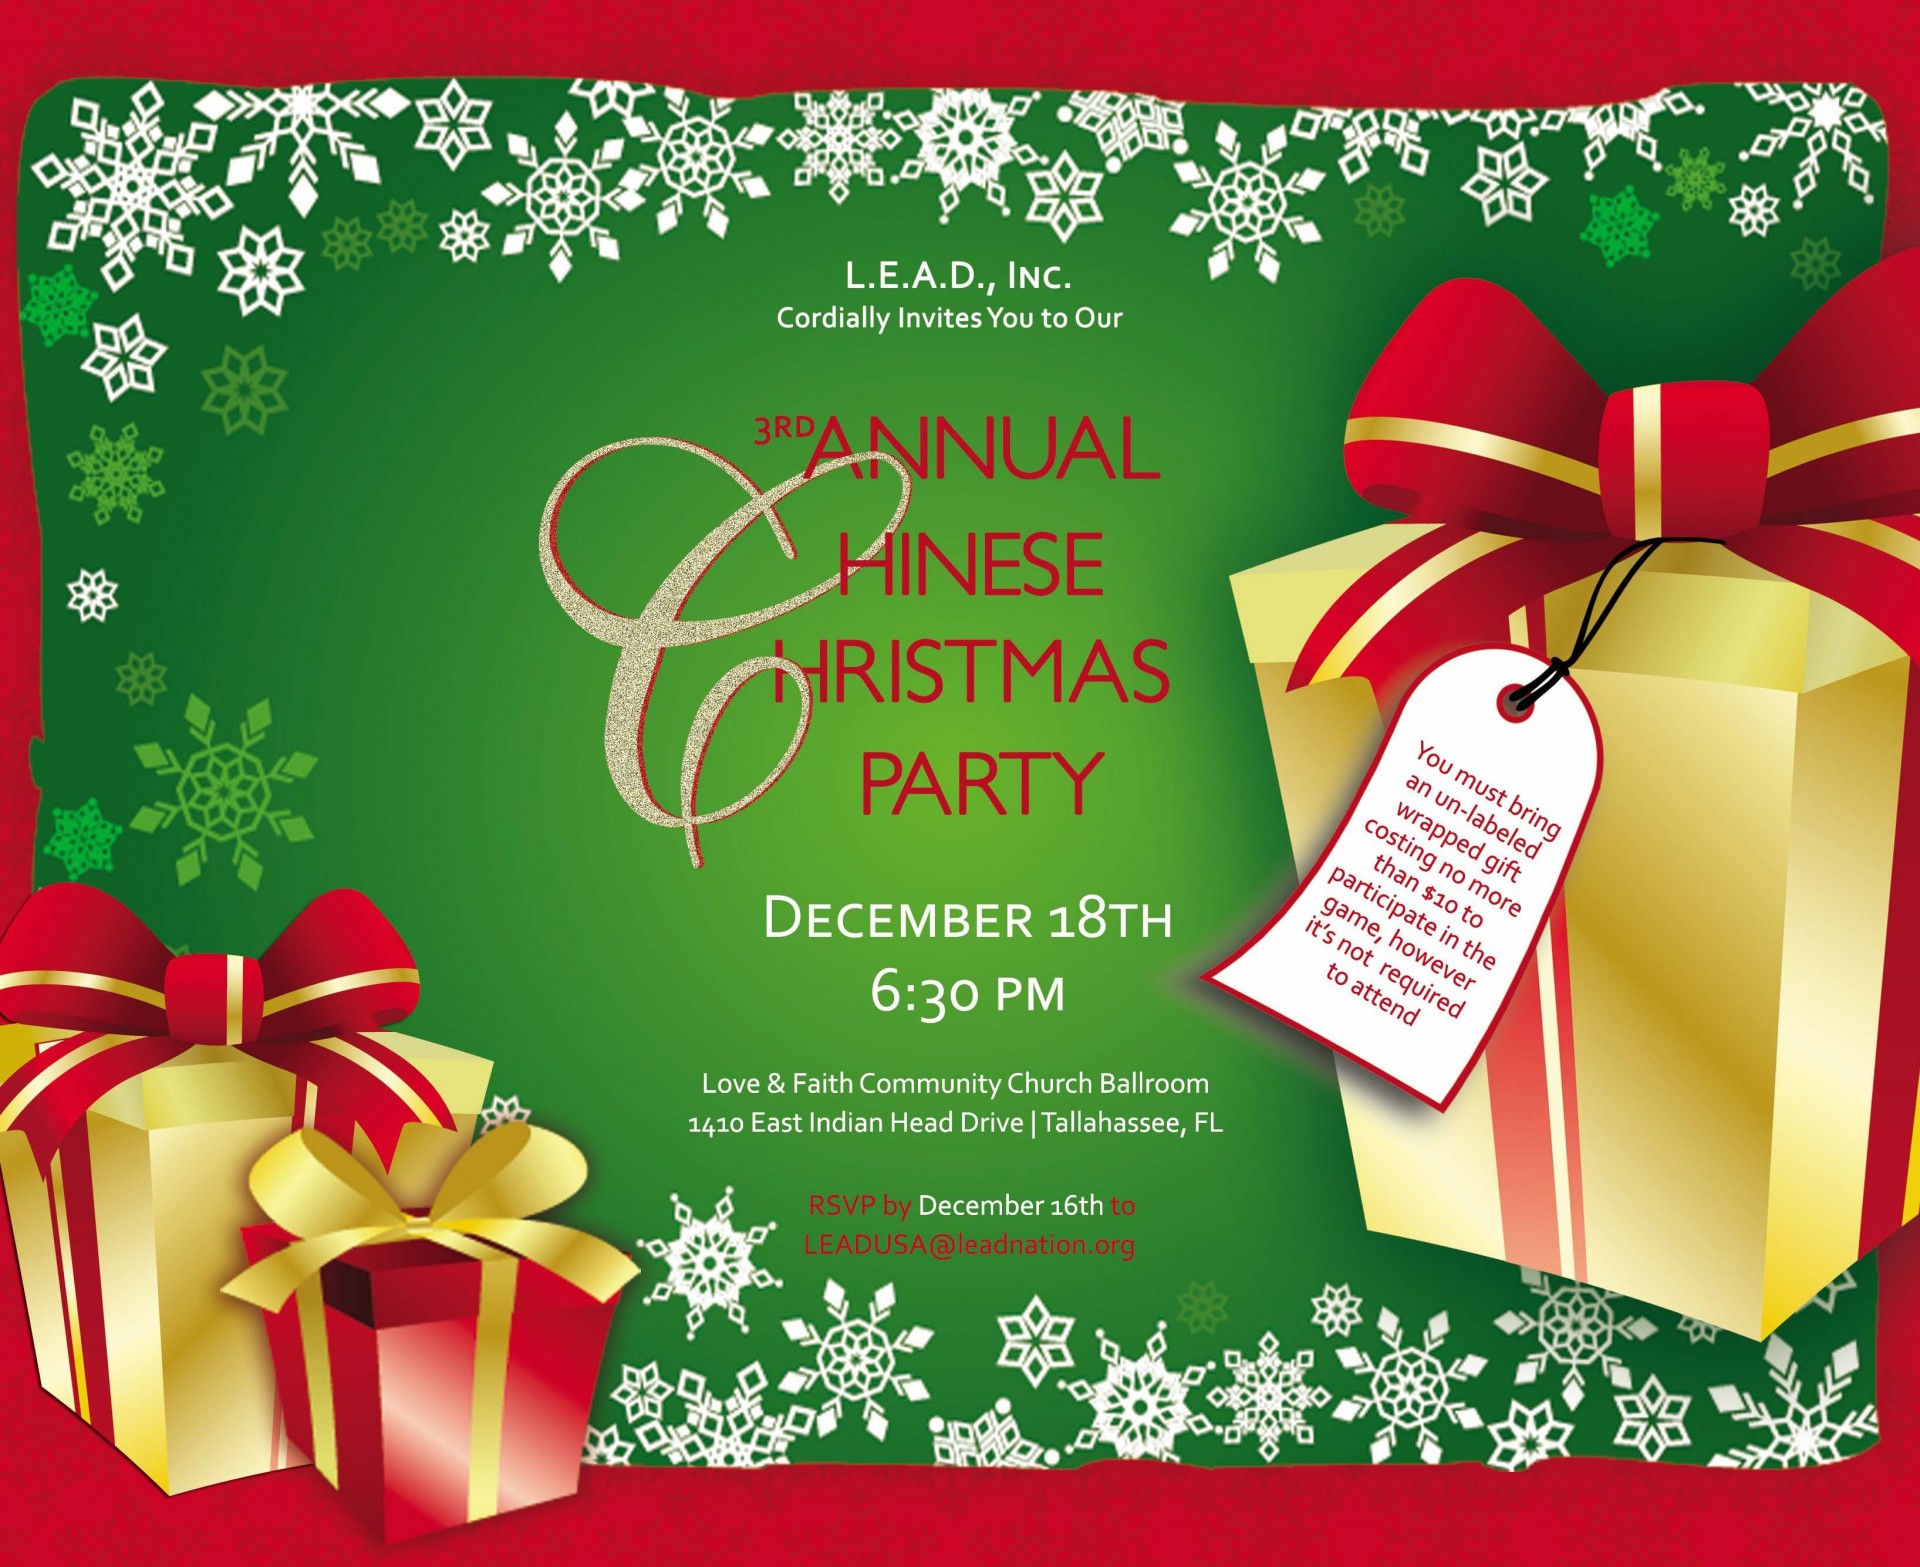 005 Excellent Christma Party Invite Template Word Design  Holiday Free Invitation Wording Example1920